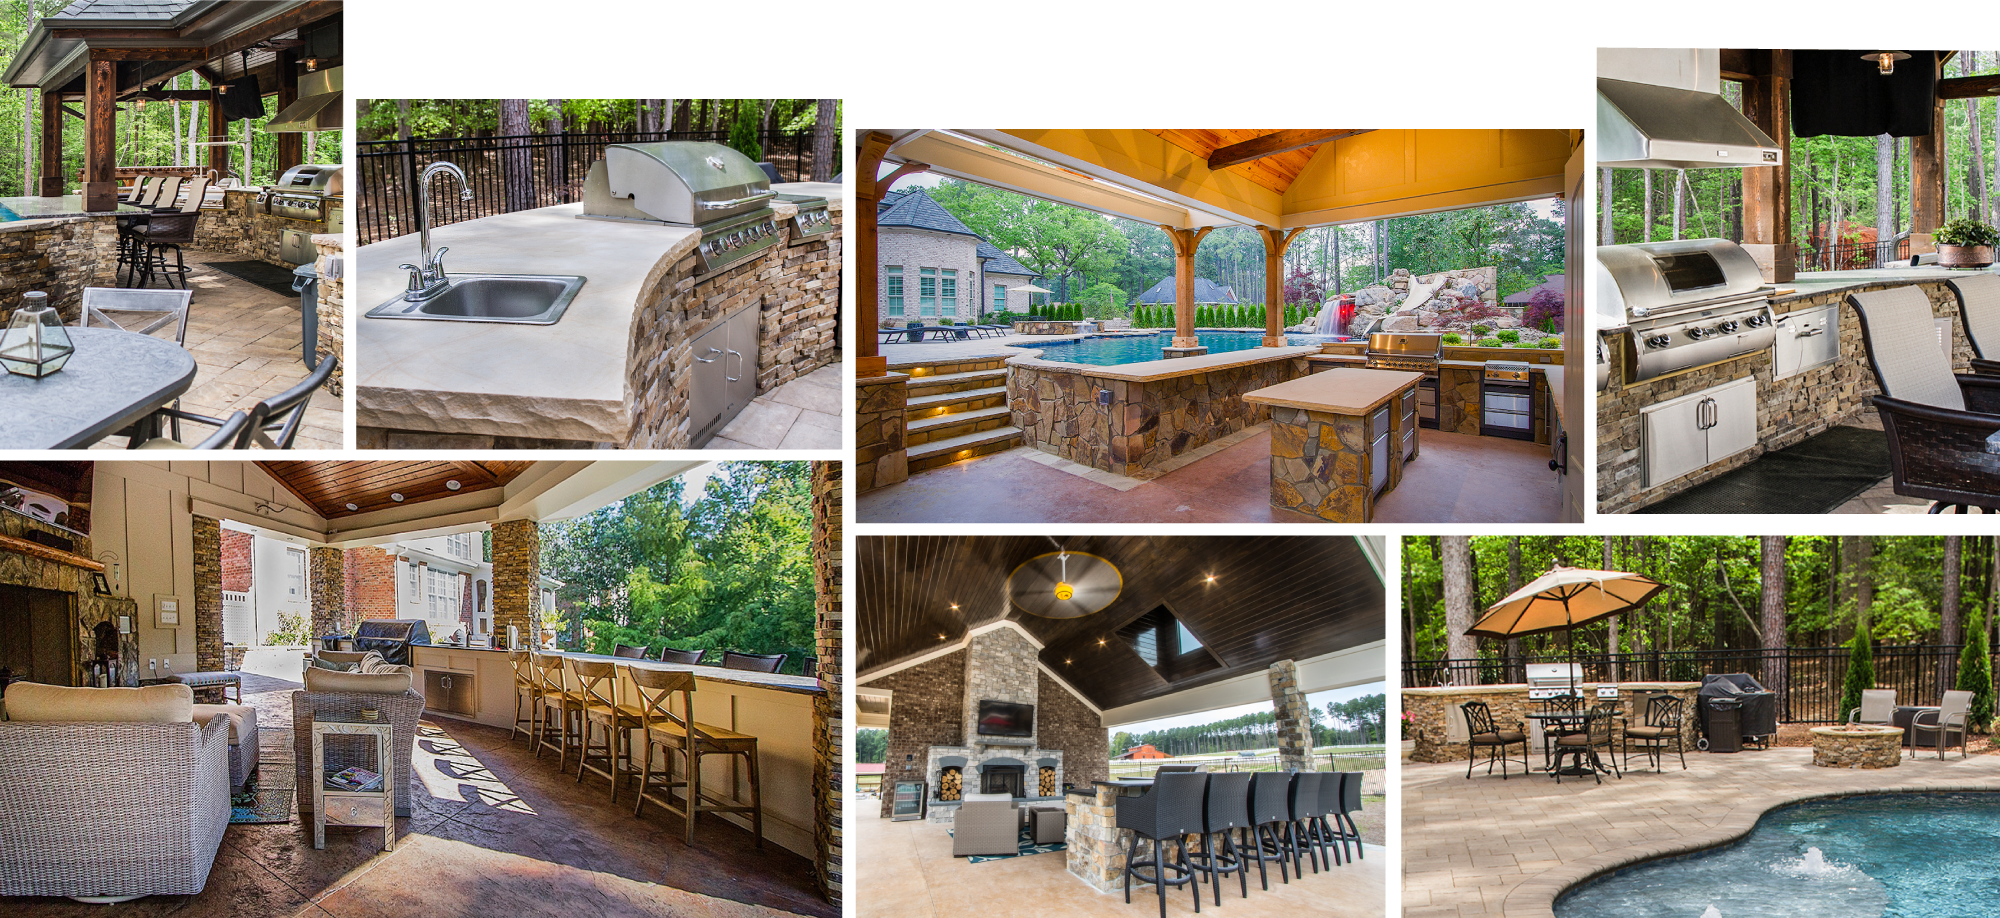 Swell Outdoor Kitchen Designs With Pool Raleigh Nc Blue Haven Download Free Architecture Designs Scobabritishbridgeorg